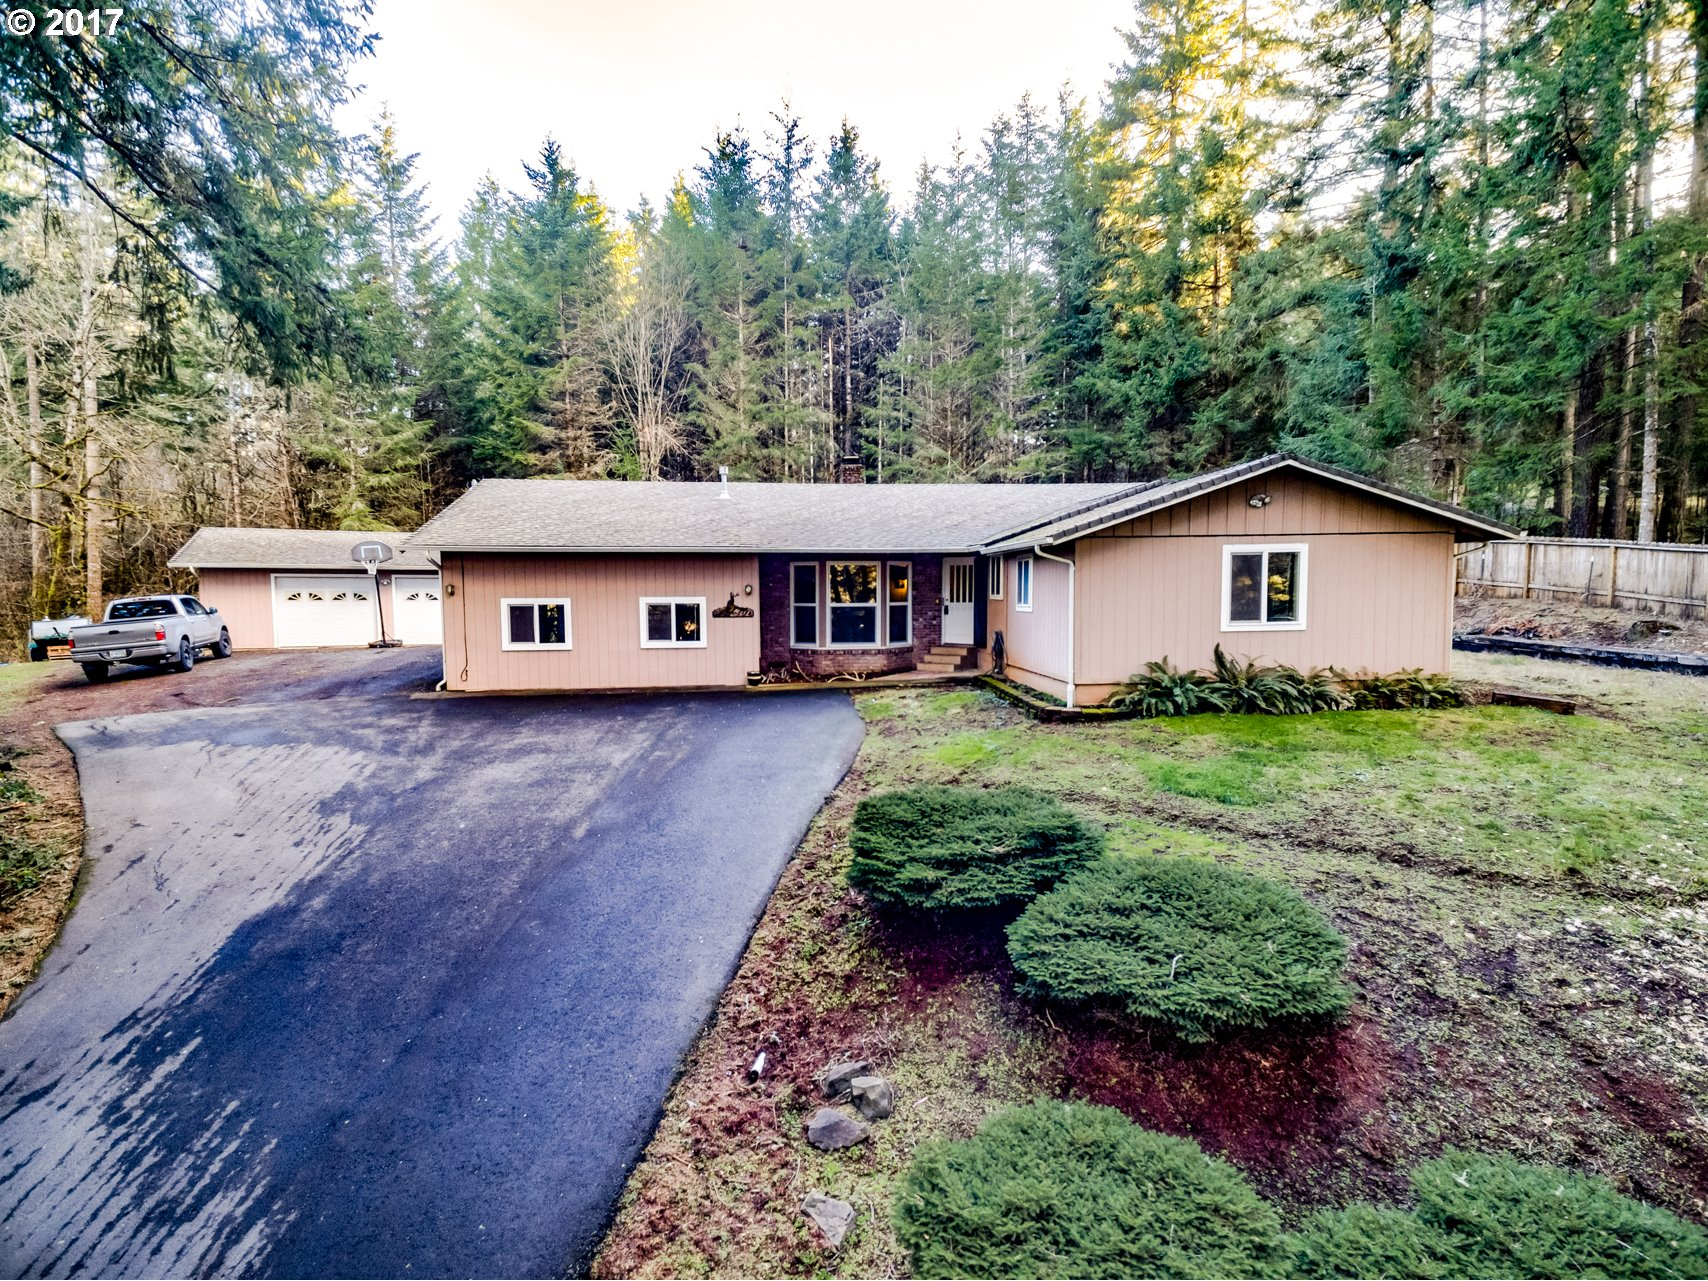 261 TALEMENA DR, Cottage Grove, OR 97424